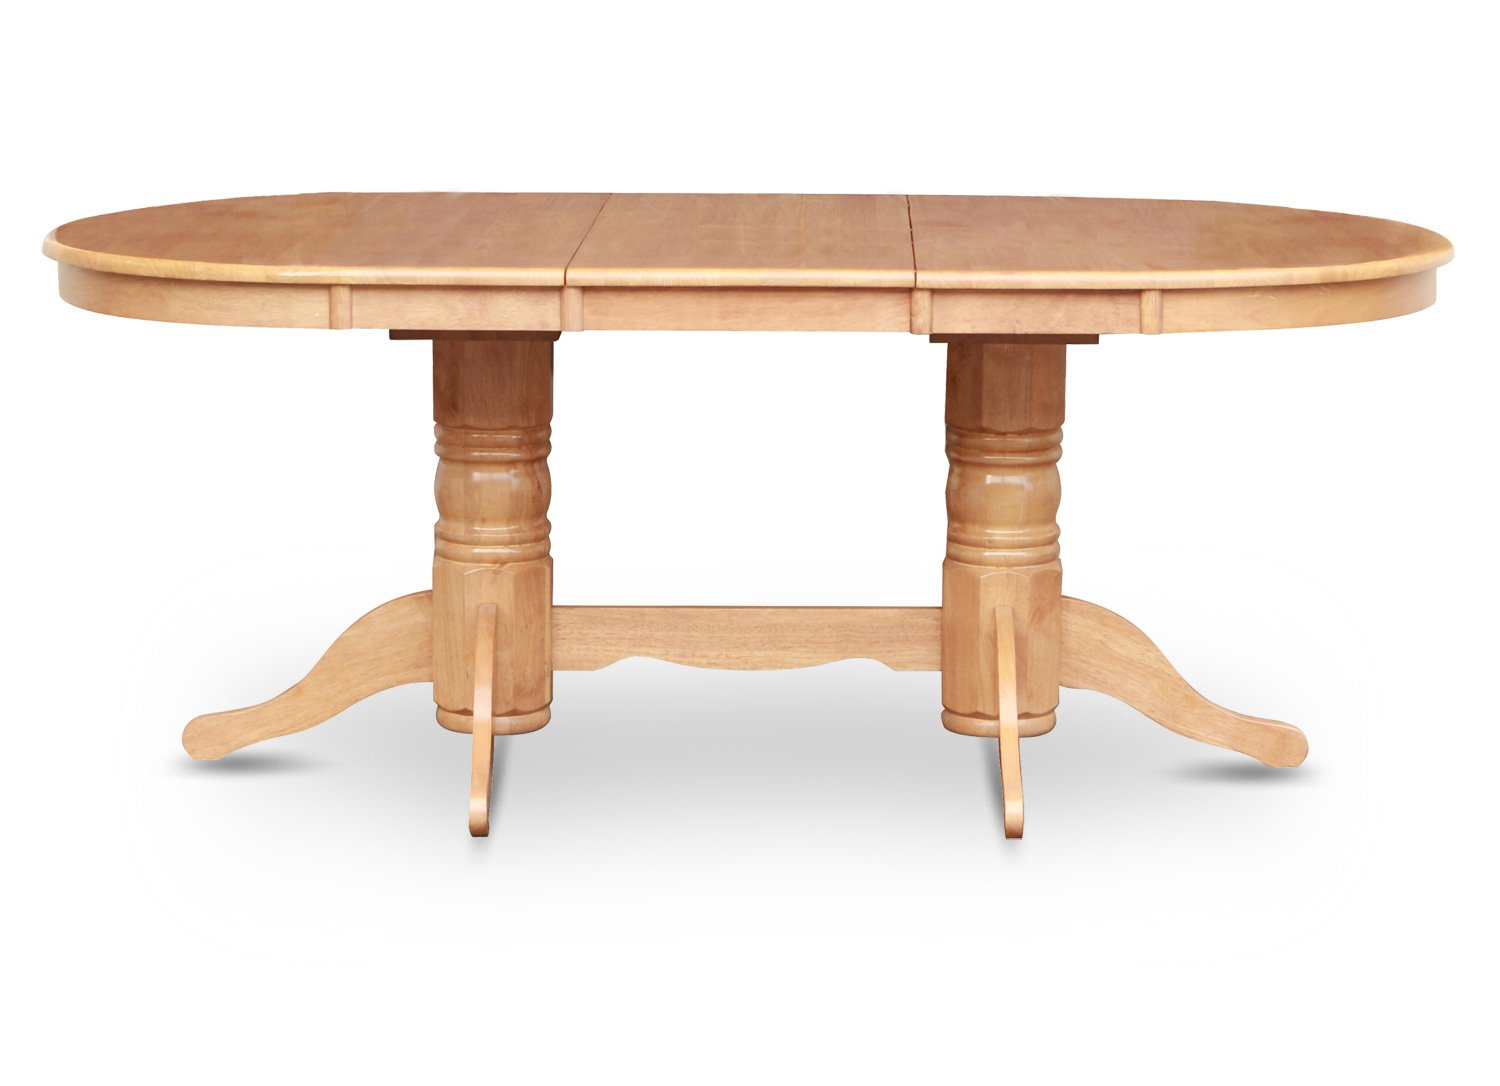 Vancouver oval dining room table 17 extension leaf in for Dining room tables vancouver